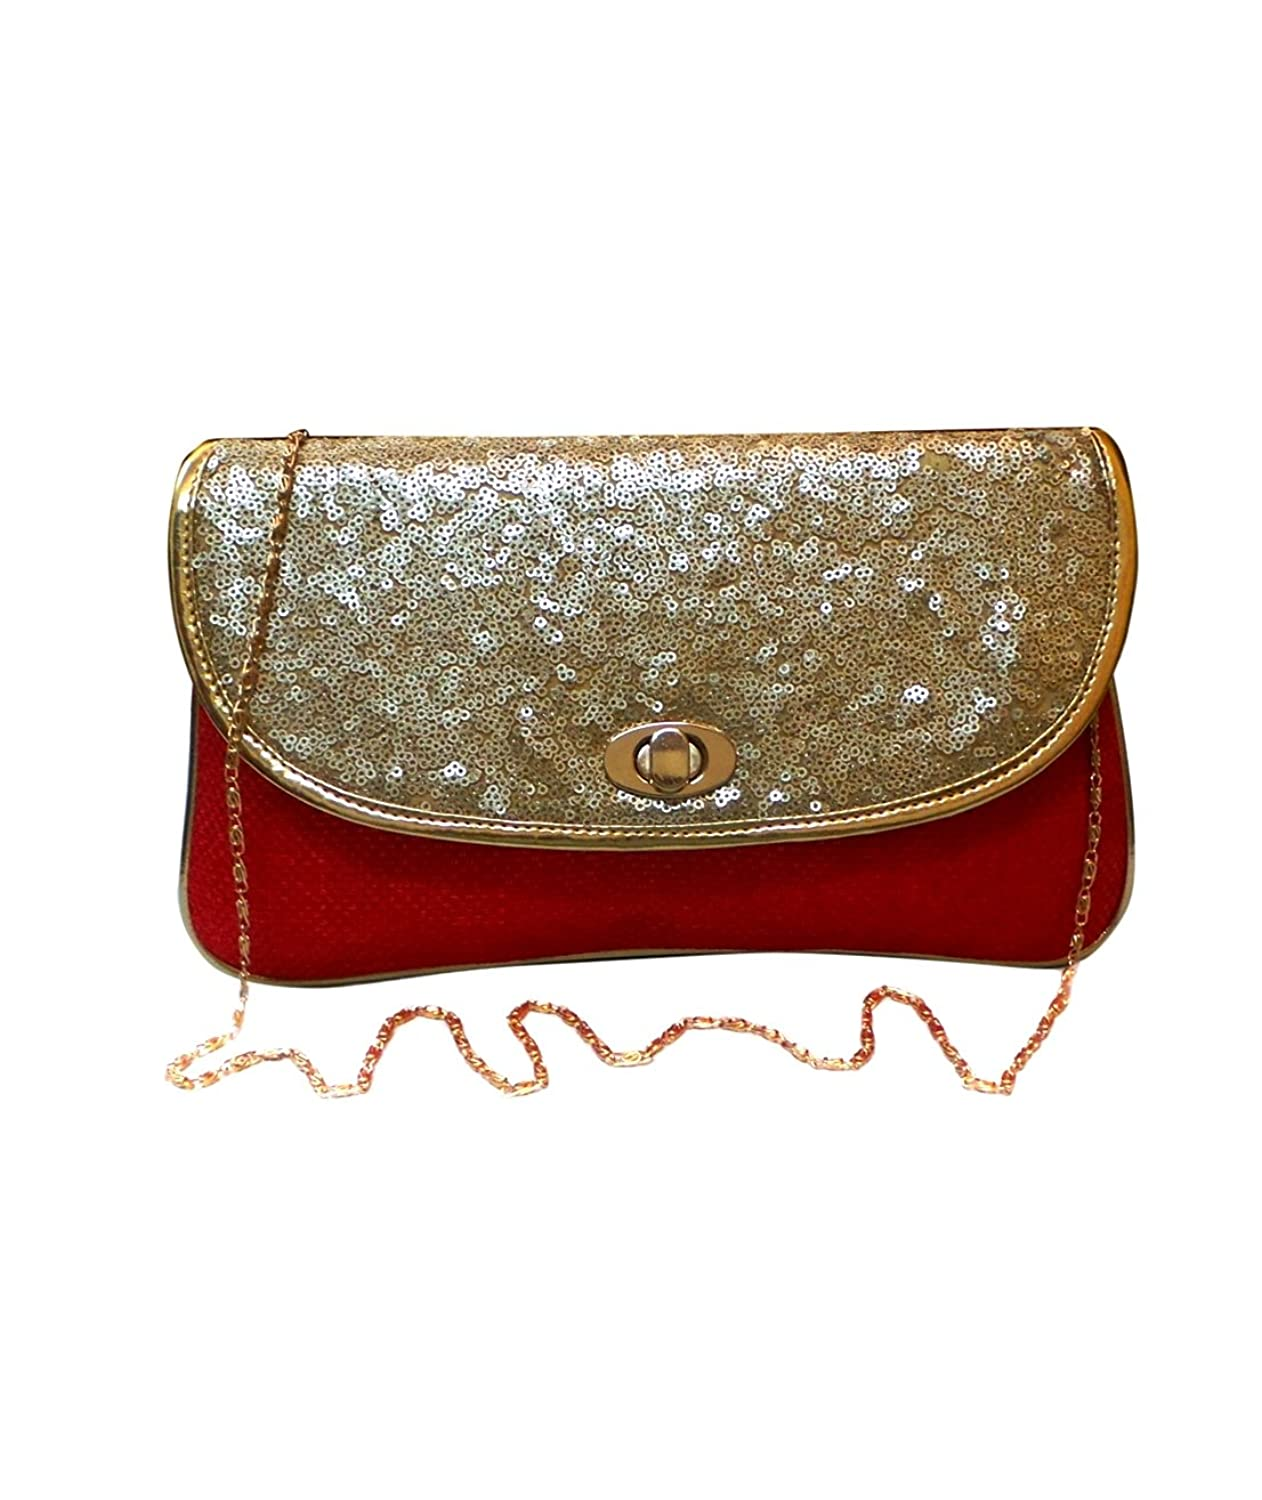 Bhamini Maroon Jute Clutch with sequins work Flap